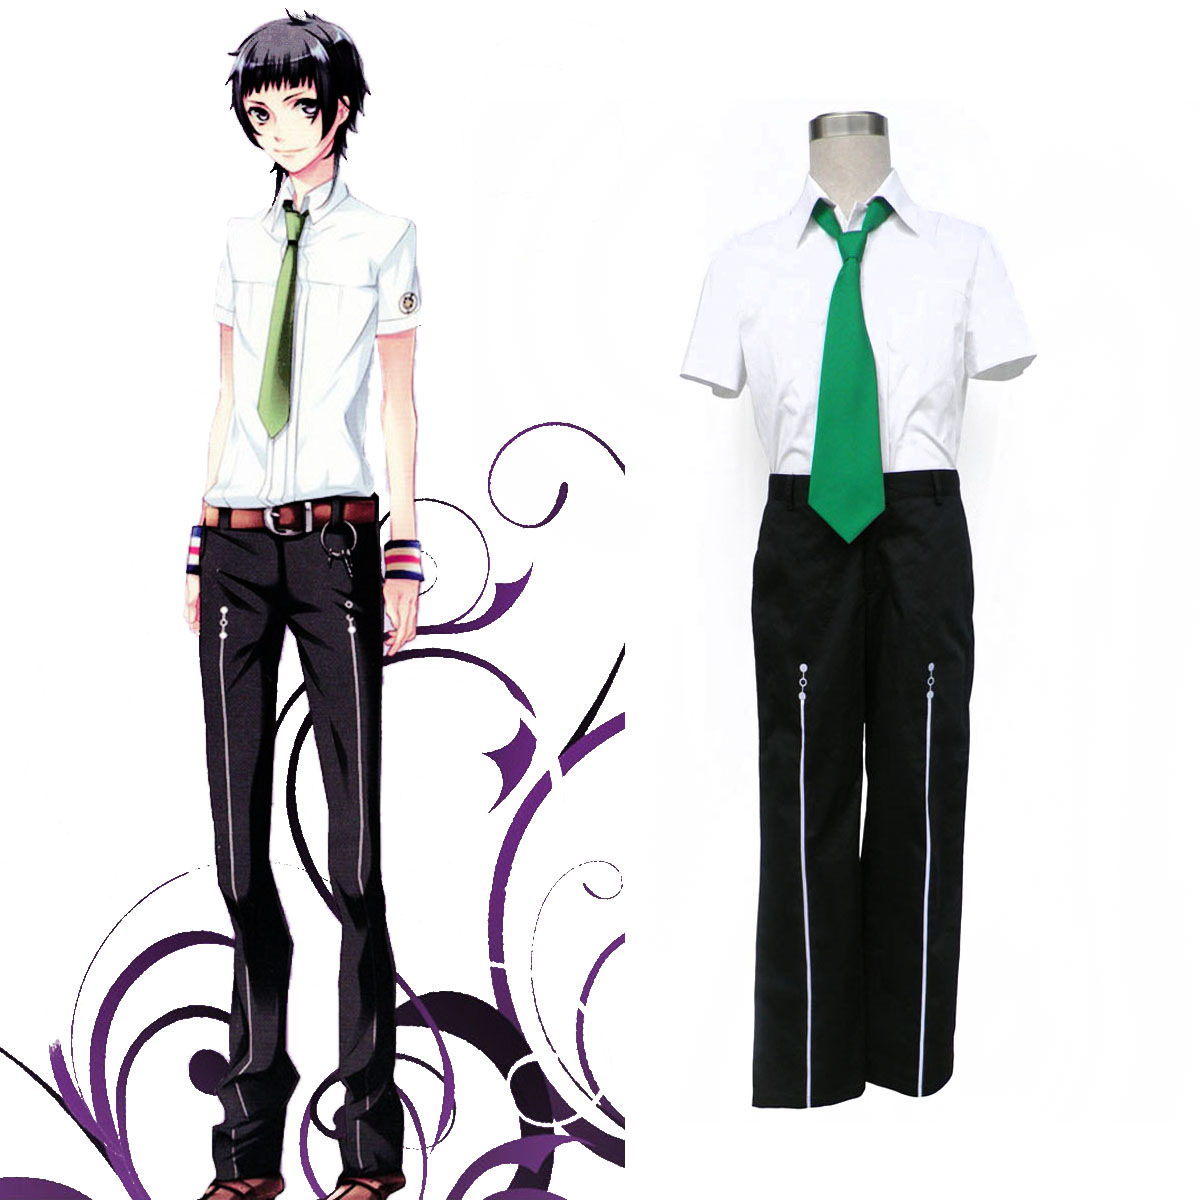 Starry Sky Male Summer School Uniform 2 Cosplay Costumes AU